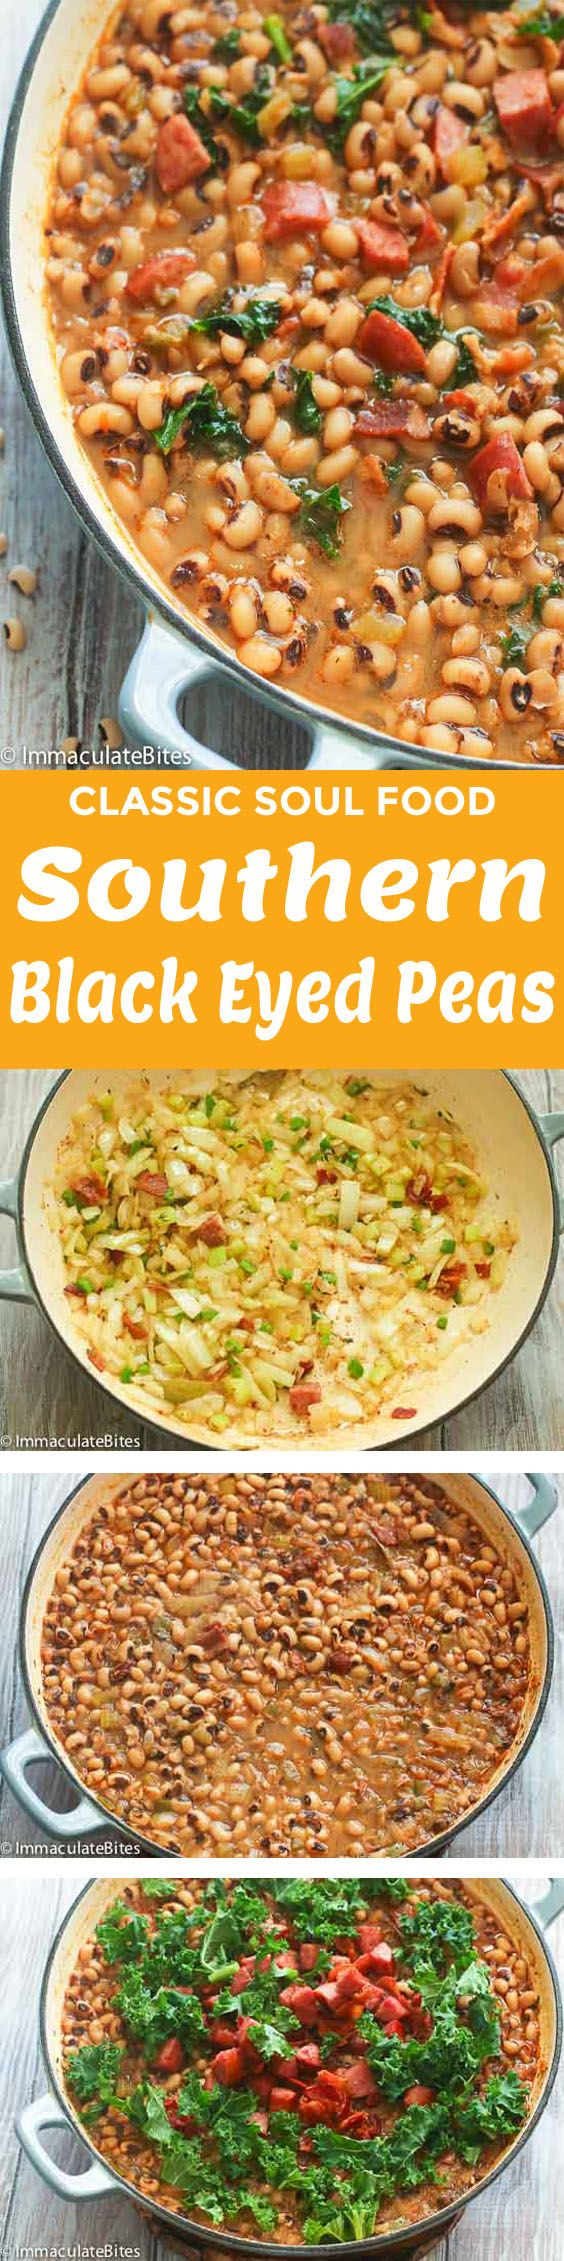 Southern Black Eyed Peas Recipe or Hoppin' John is a hearty, warm and soulful food. This blacked eyed peas recipe is smokey, spicy with a deep yet not too overwhelming bacon flavor. A Southern traditional dish served on New Year's Day to bring good luck charm! I love anything beans! Perhaps, it all …